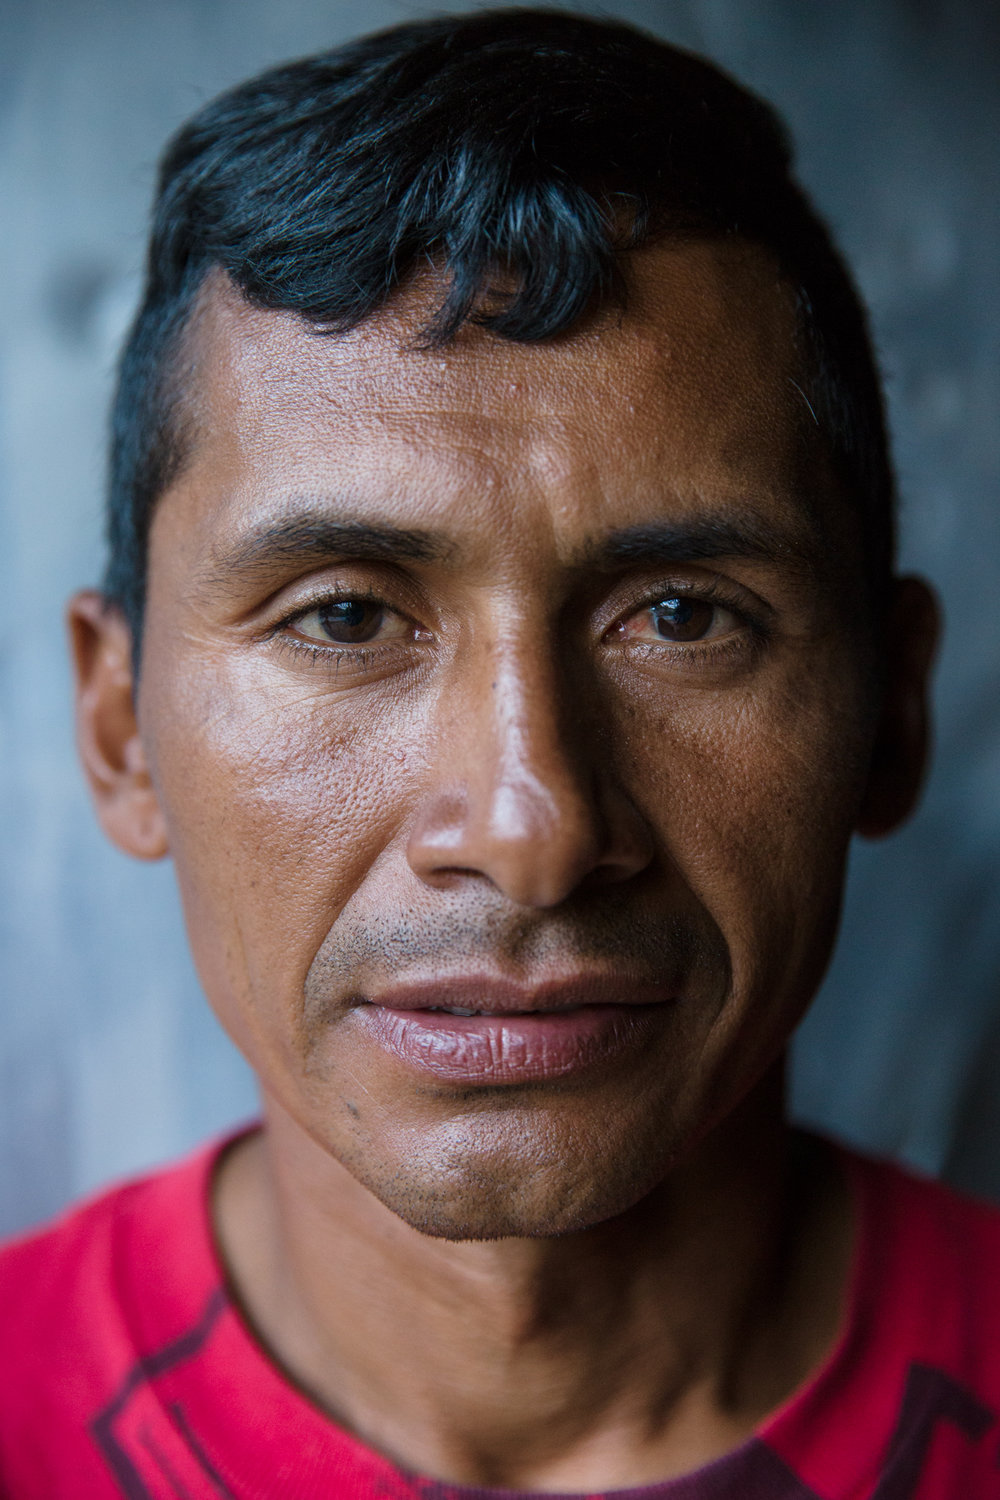 Jairo Blanchard, a former gang member, now runs a non-profit in Matagalpa, Nicaragua, where he works with local youth in an effort to try and intervene in the cycle of gang violence.